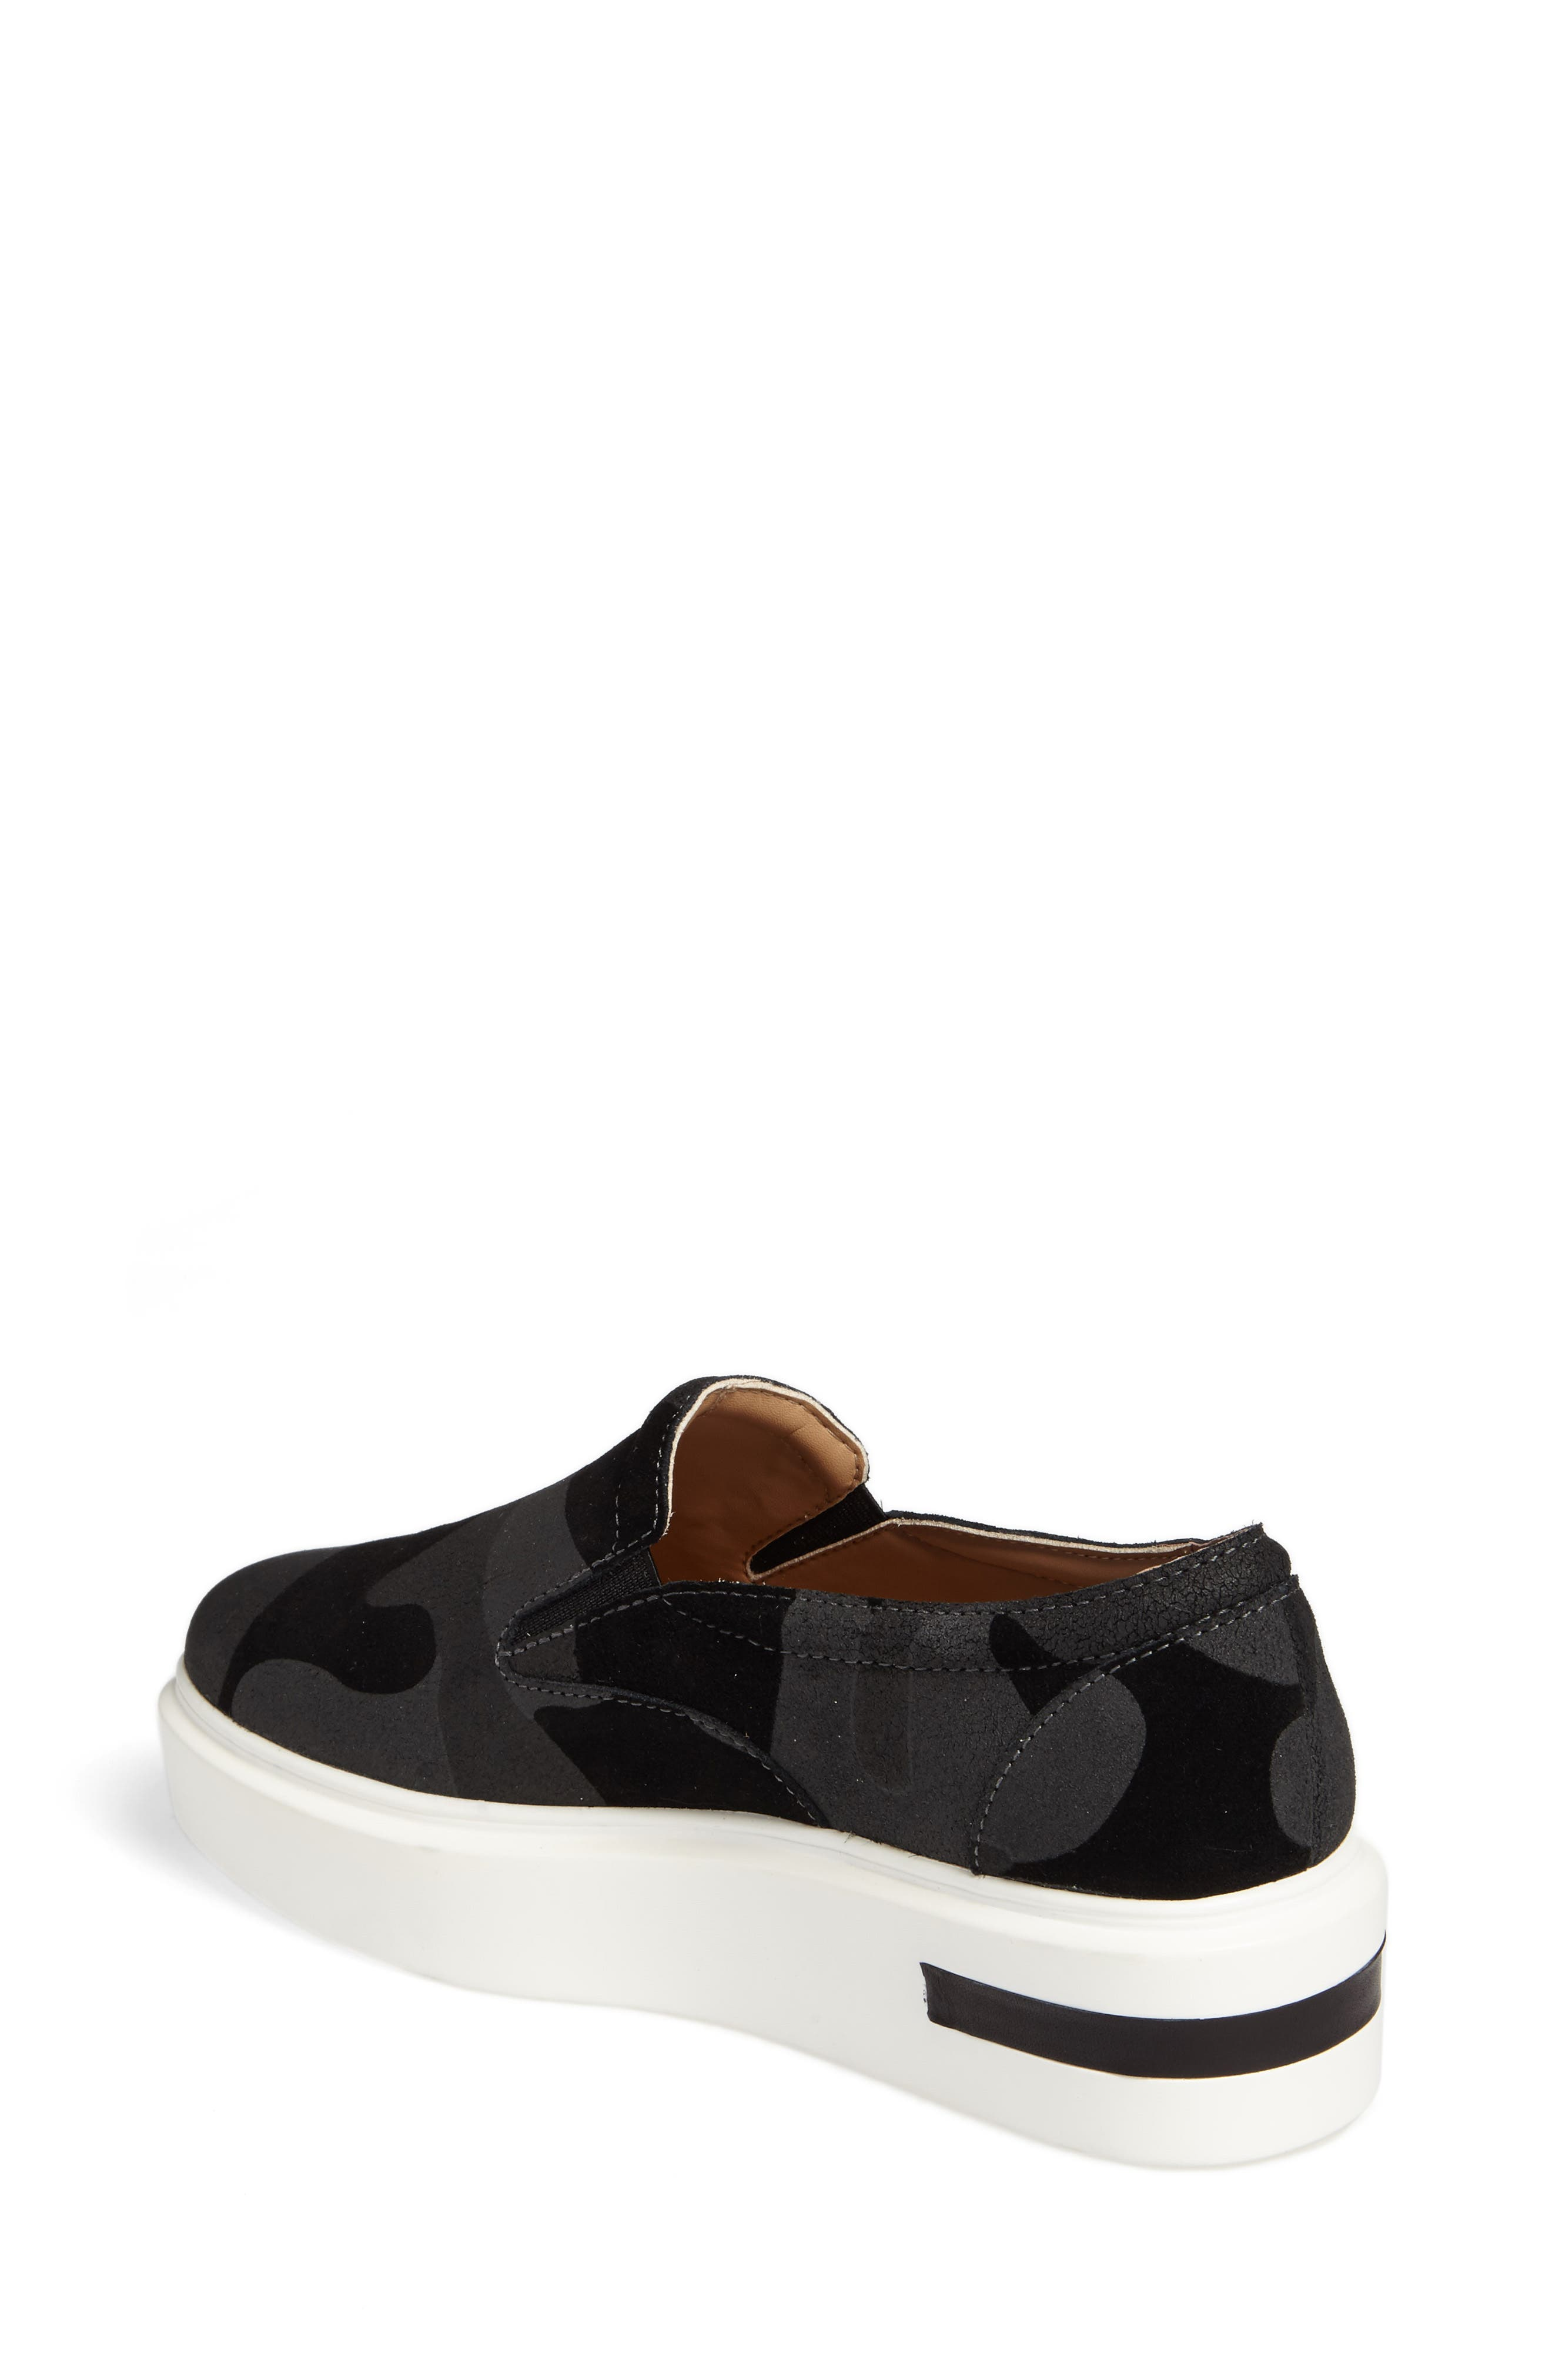 Fairfax Platform Sneaker,                             Alternate thumbnail 2, color,                             004